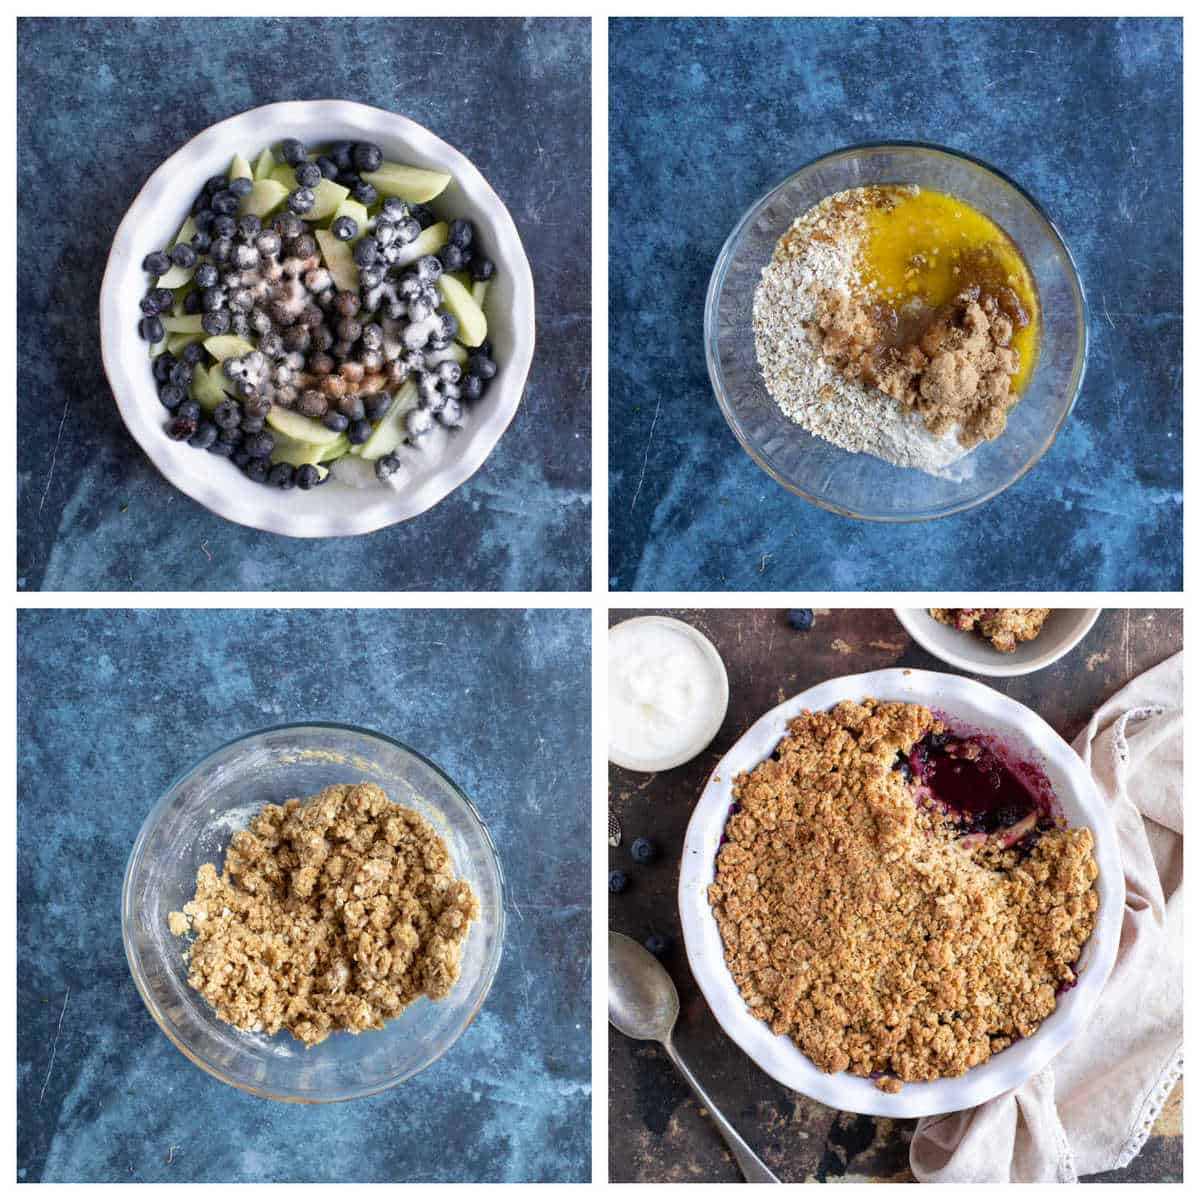 Step by step photo instructions for making apple and blueberry crumble.